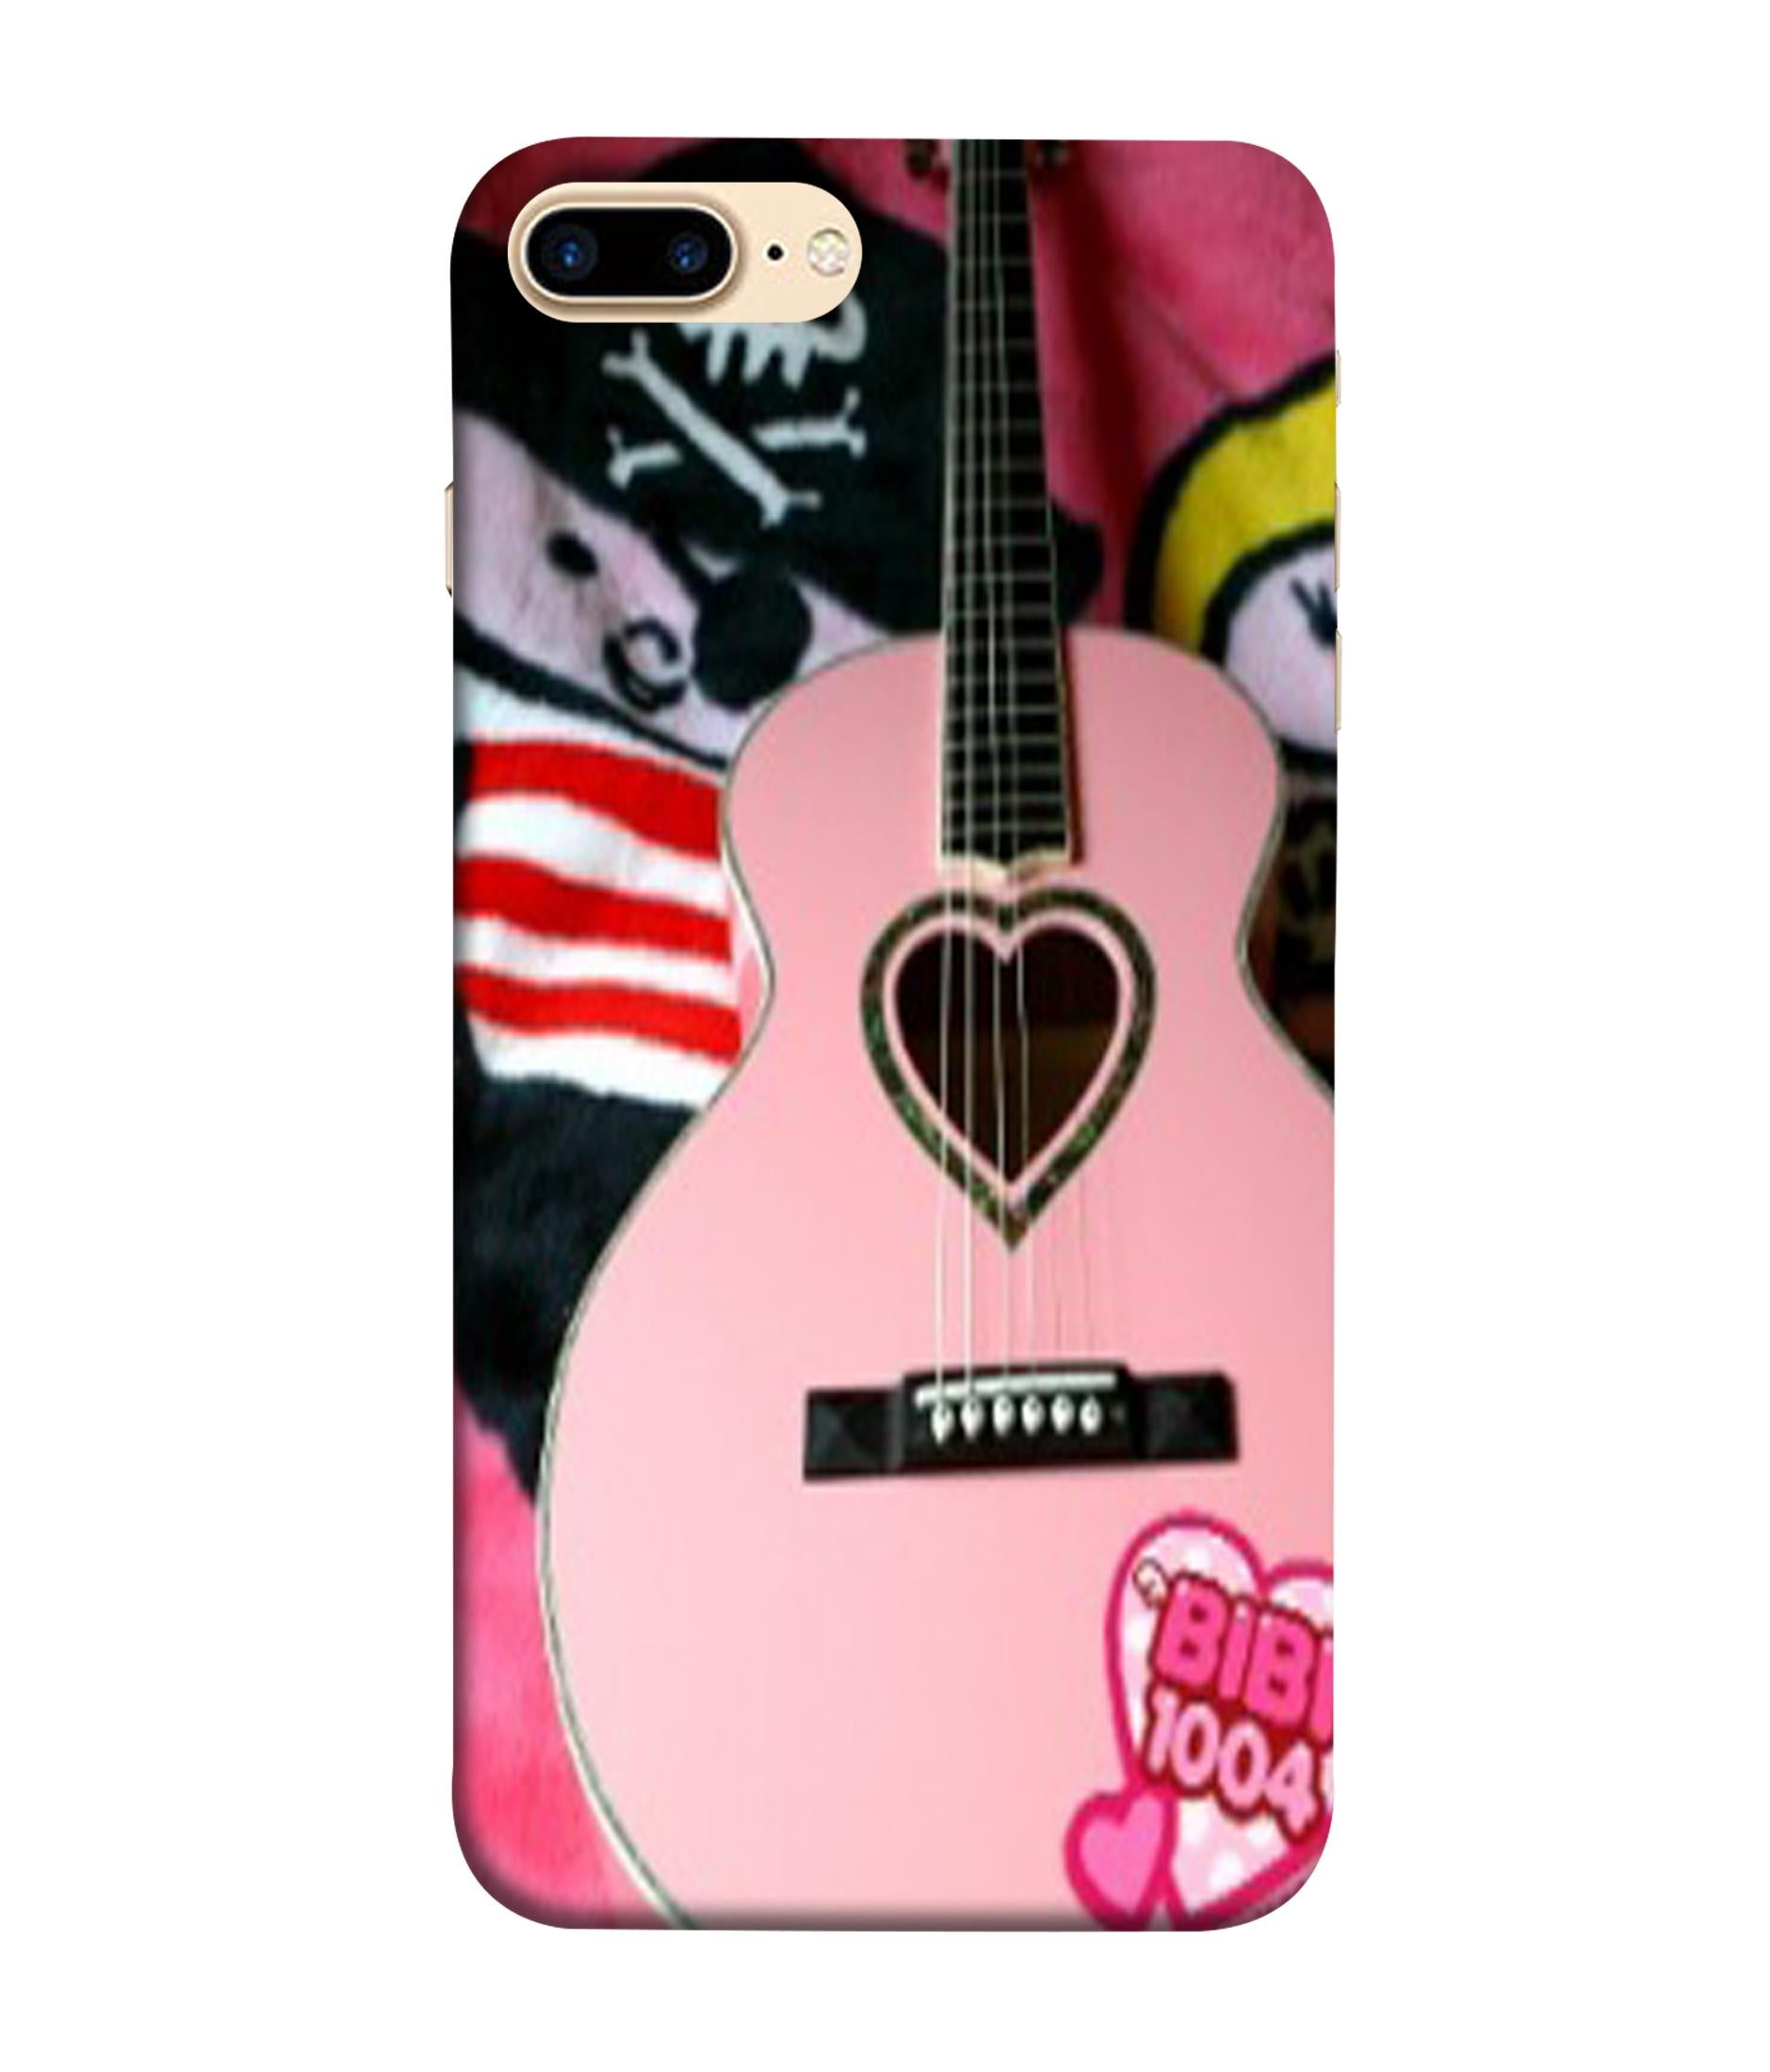 iPhone8 Plus Guitar Lovers Designed Back Cover